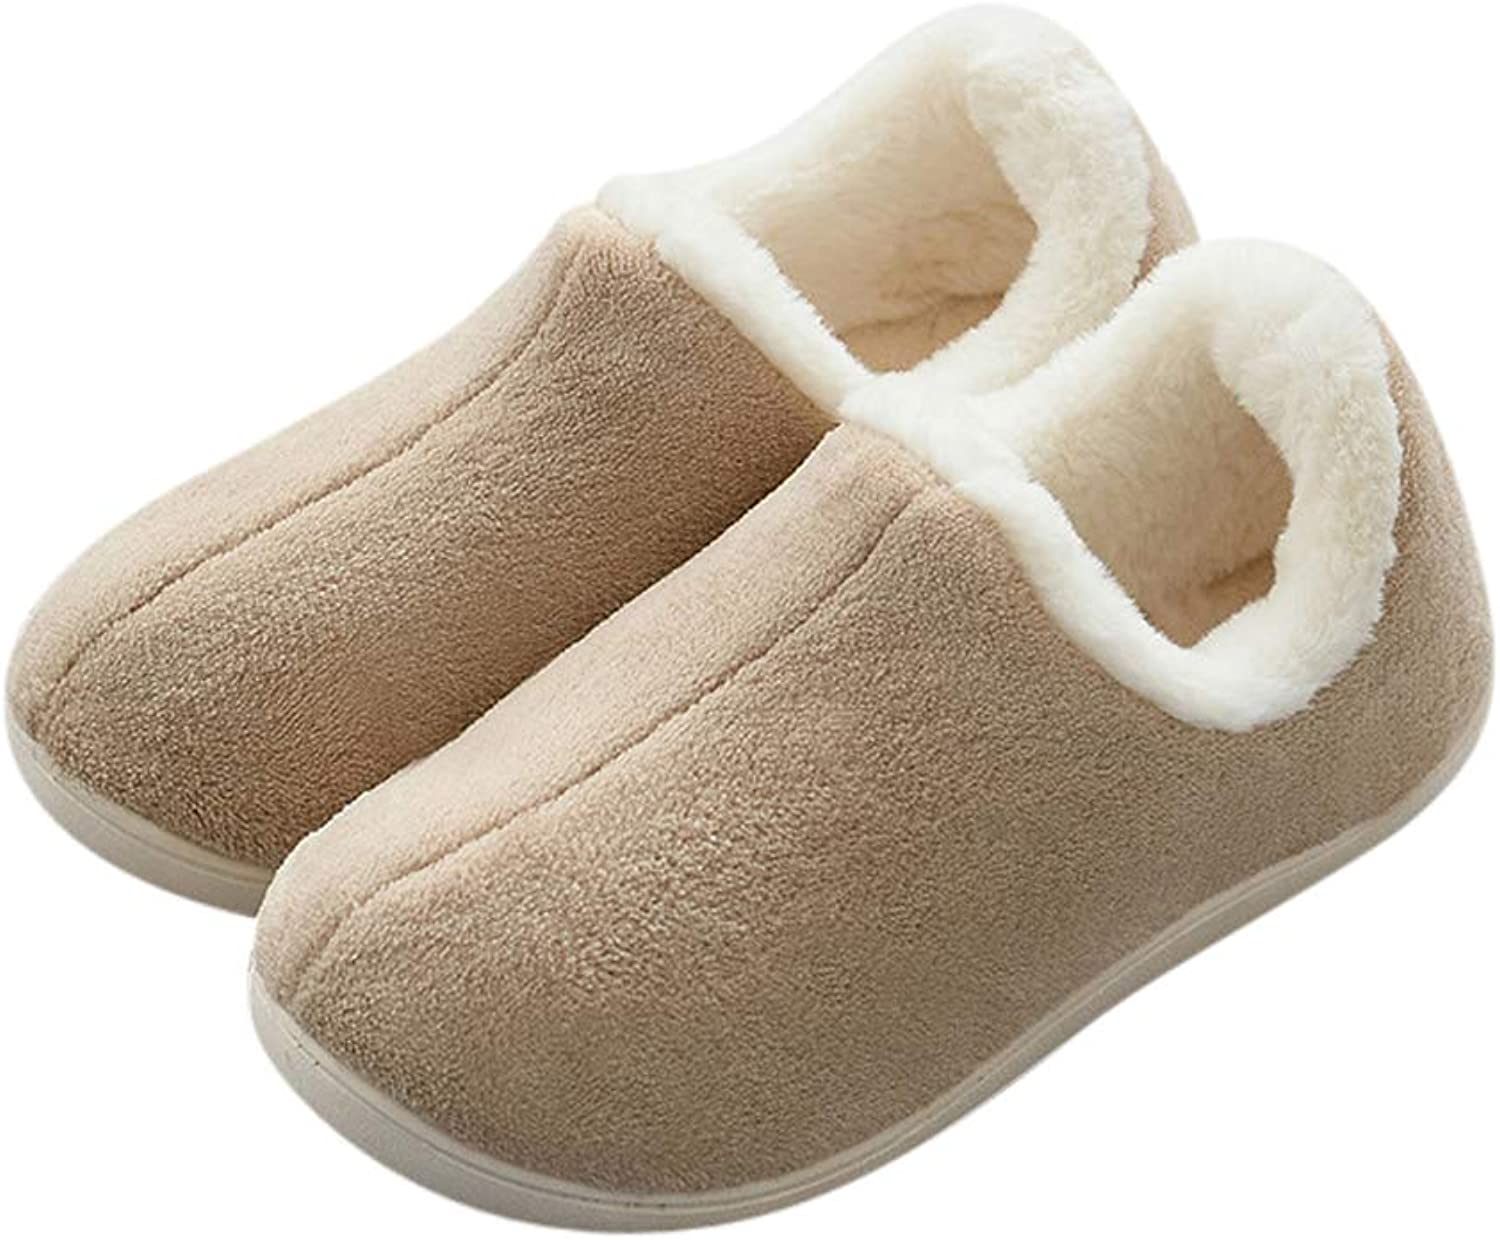 Tuoup Women's Fuzzy Fashion Anti-Slip Outdoor House Bootie Slippers